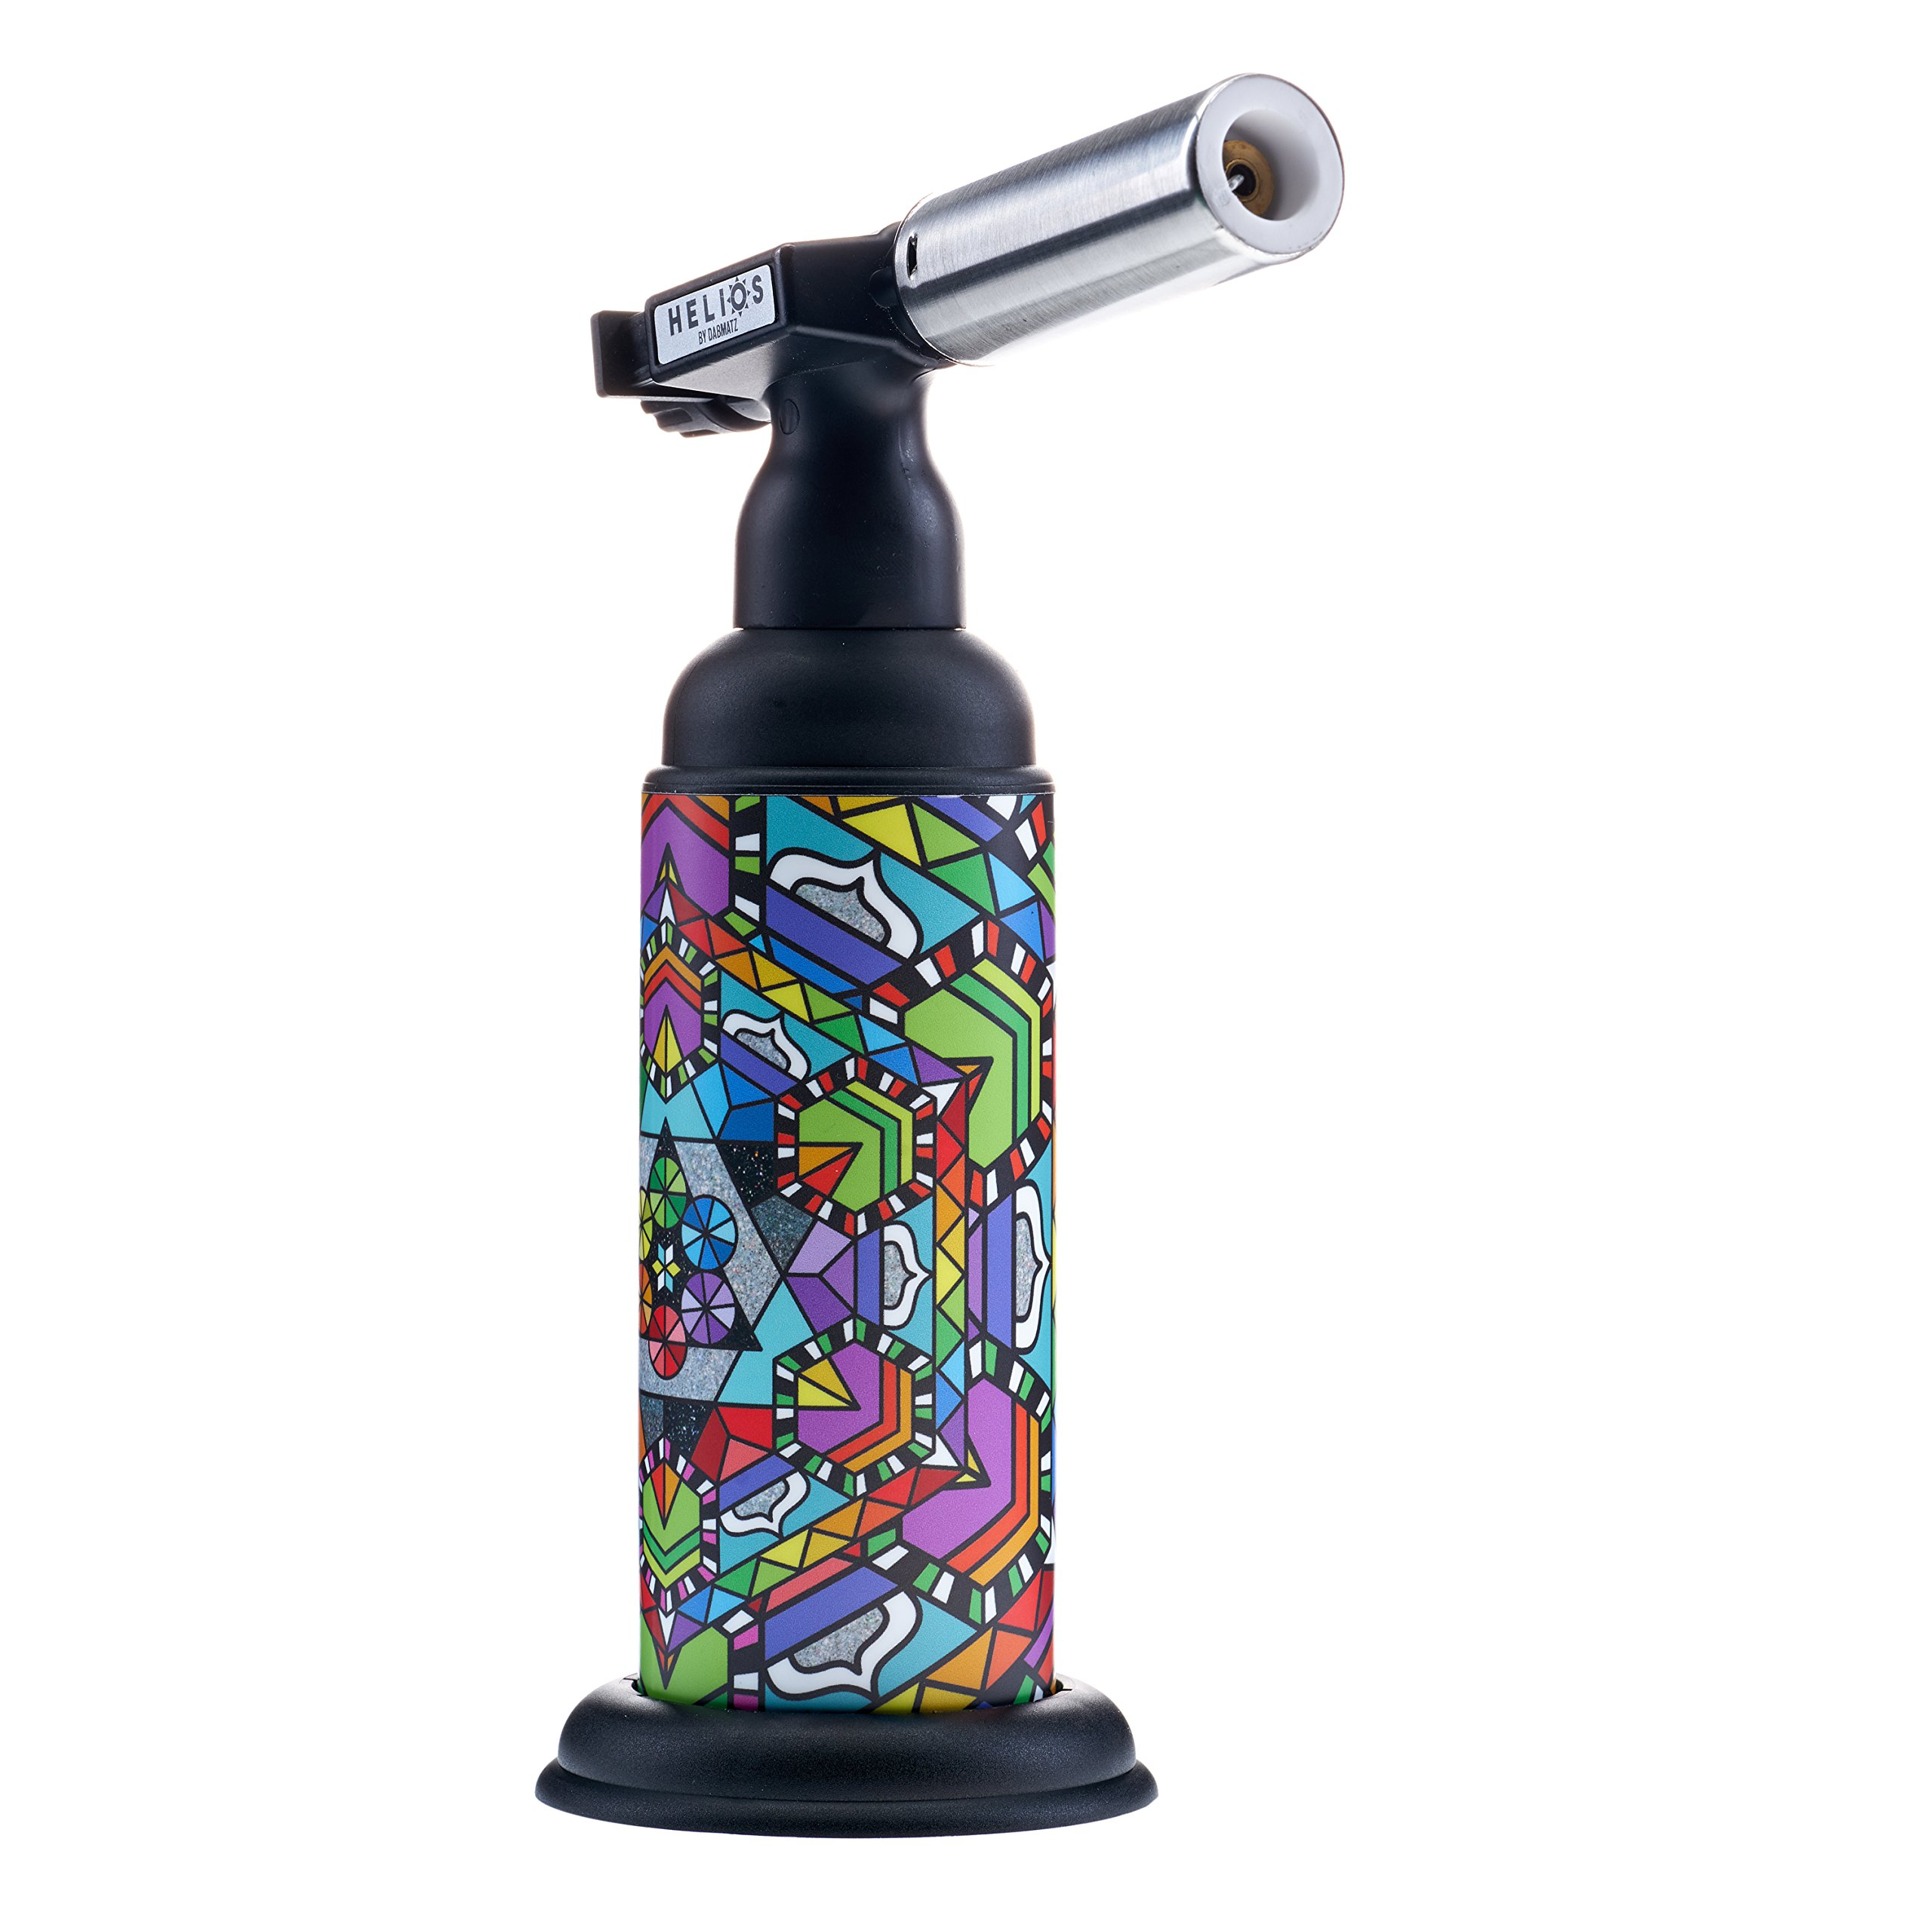 High Powered Helios Butane Torch by Dabmatz | Refillable Powerful Blow Torch With Adjustable Flame | For Dabbing, Desserts, Crème Brûlée, Soldering, Welding & More. (Design 2)